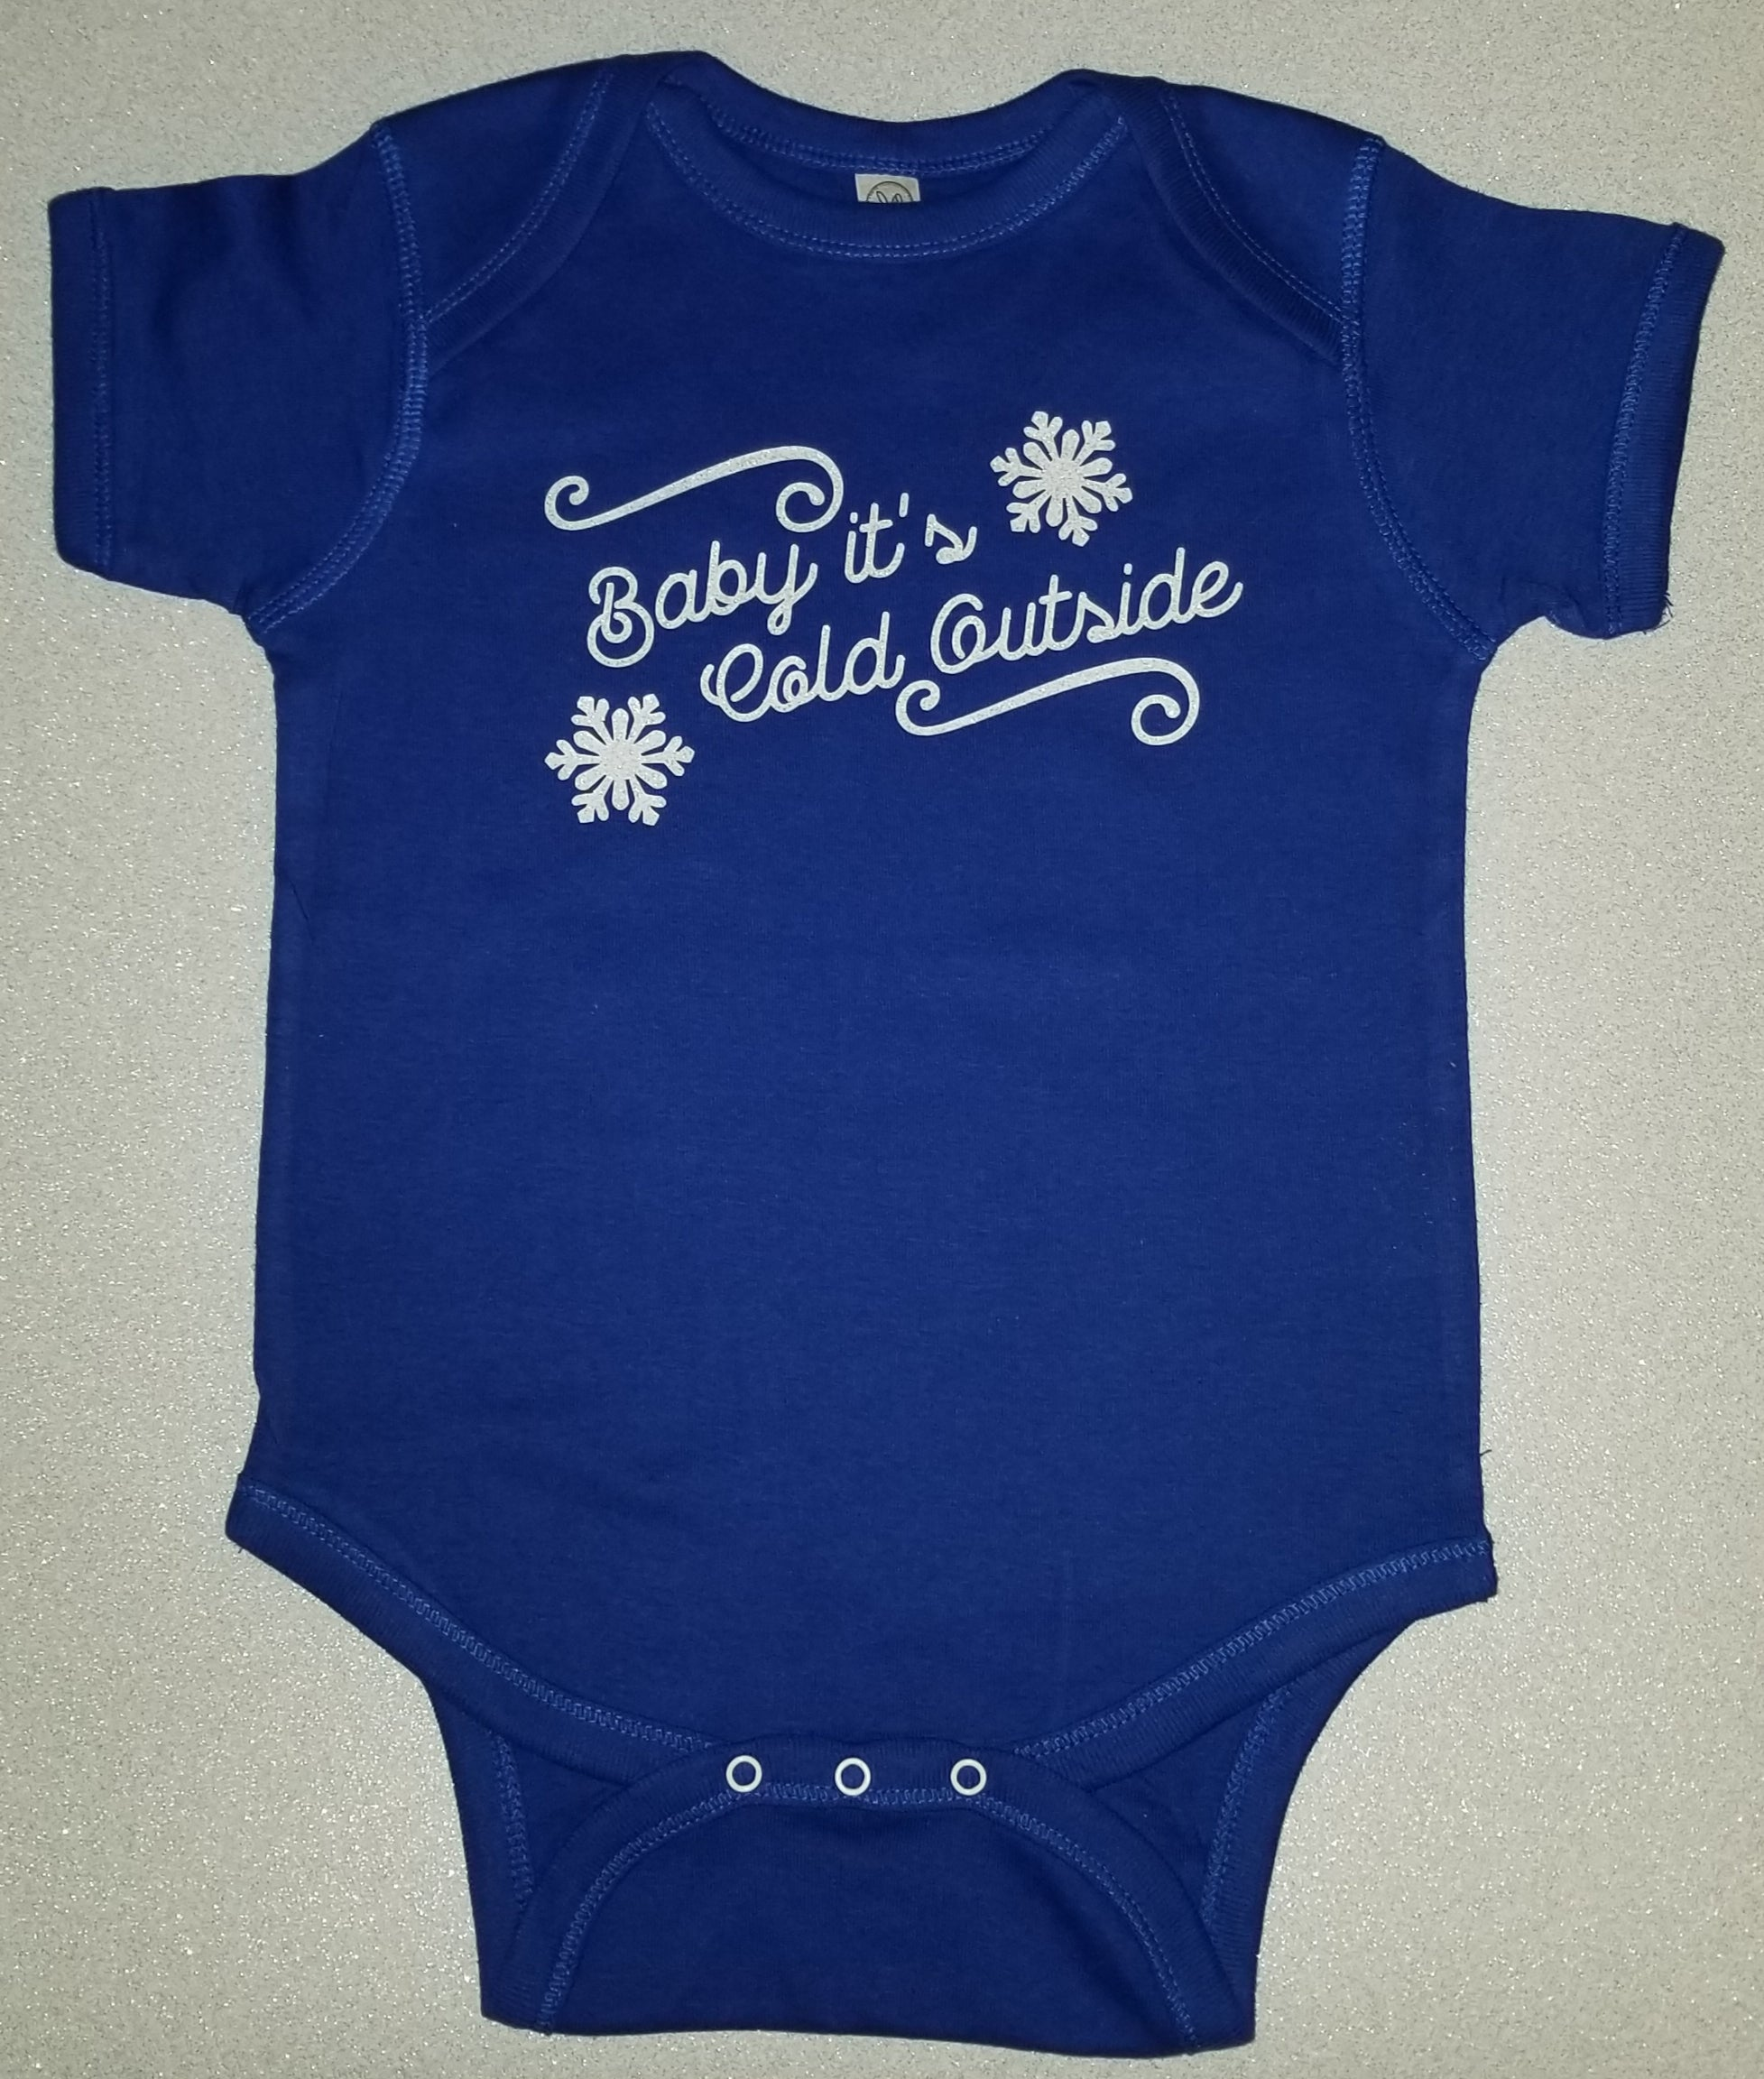 Baby it's Cold Outside Infant Bodysuit with Metal Flake Lettering (Light Glitter)